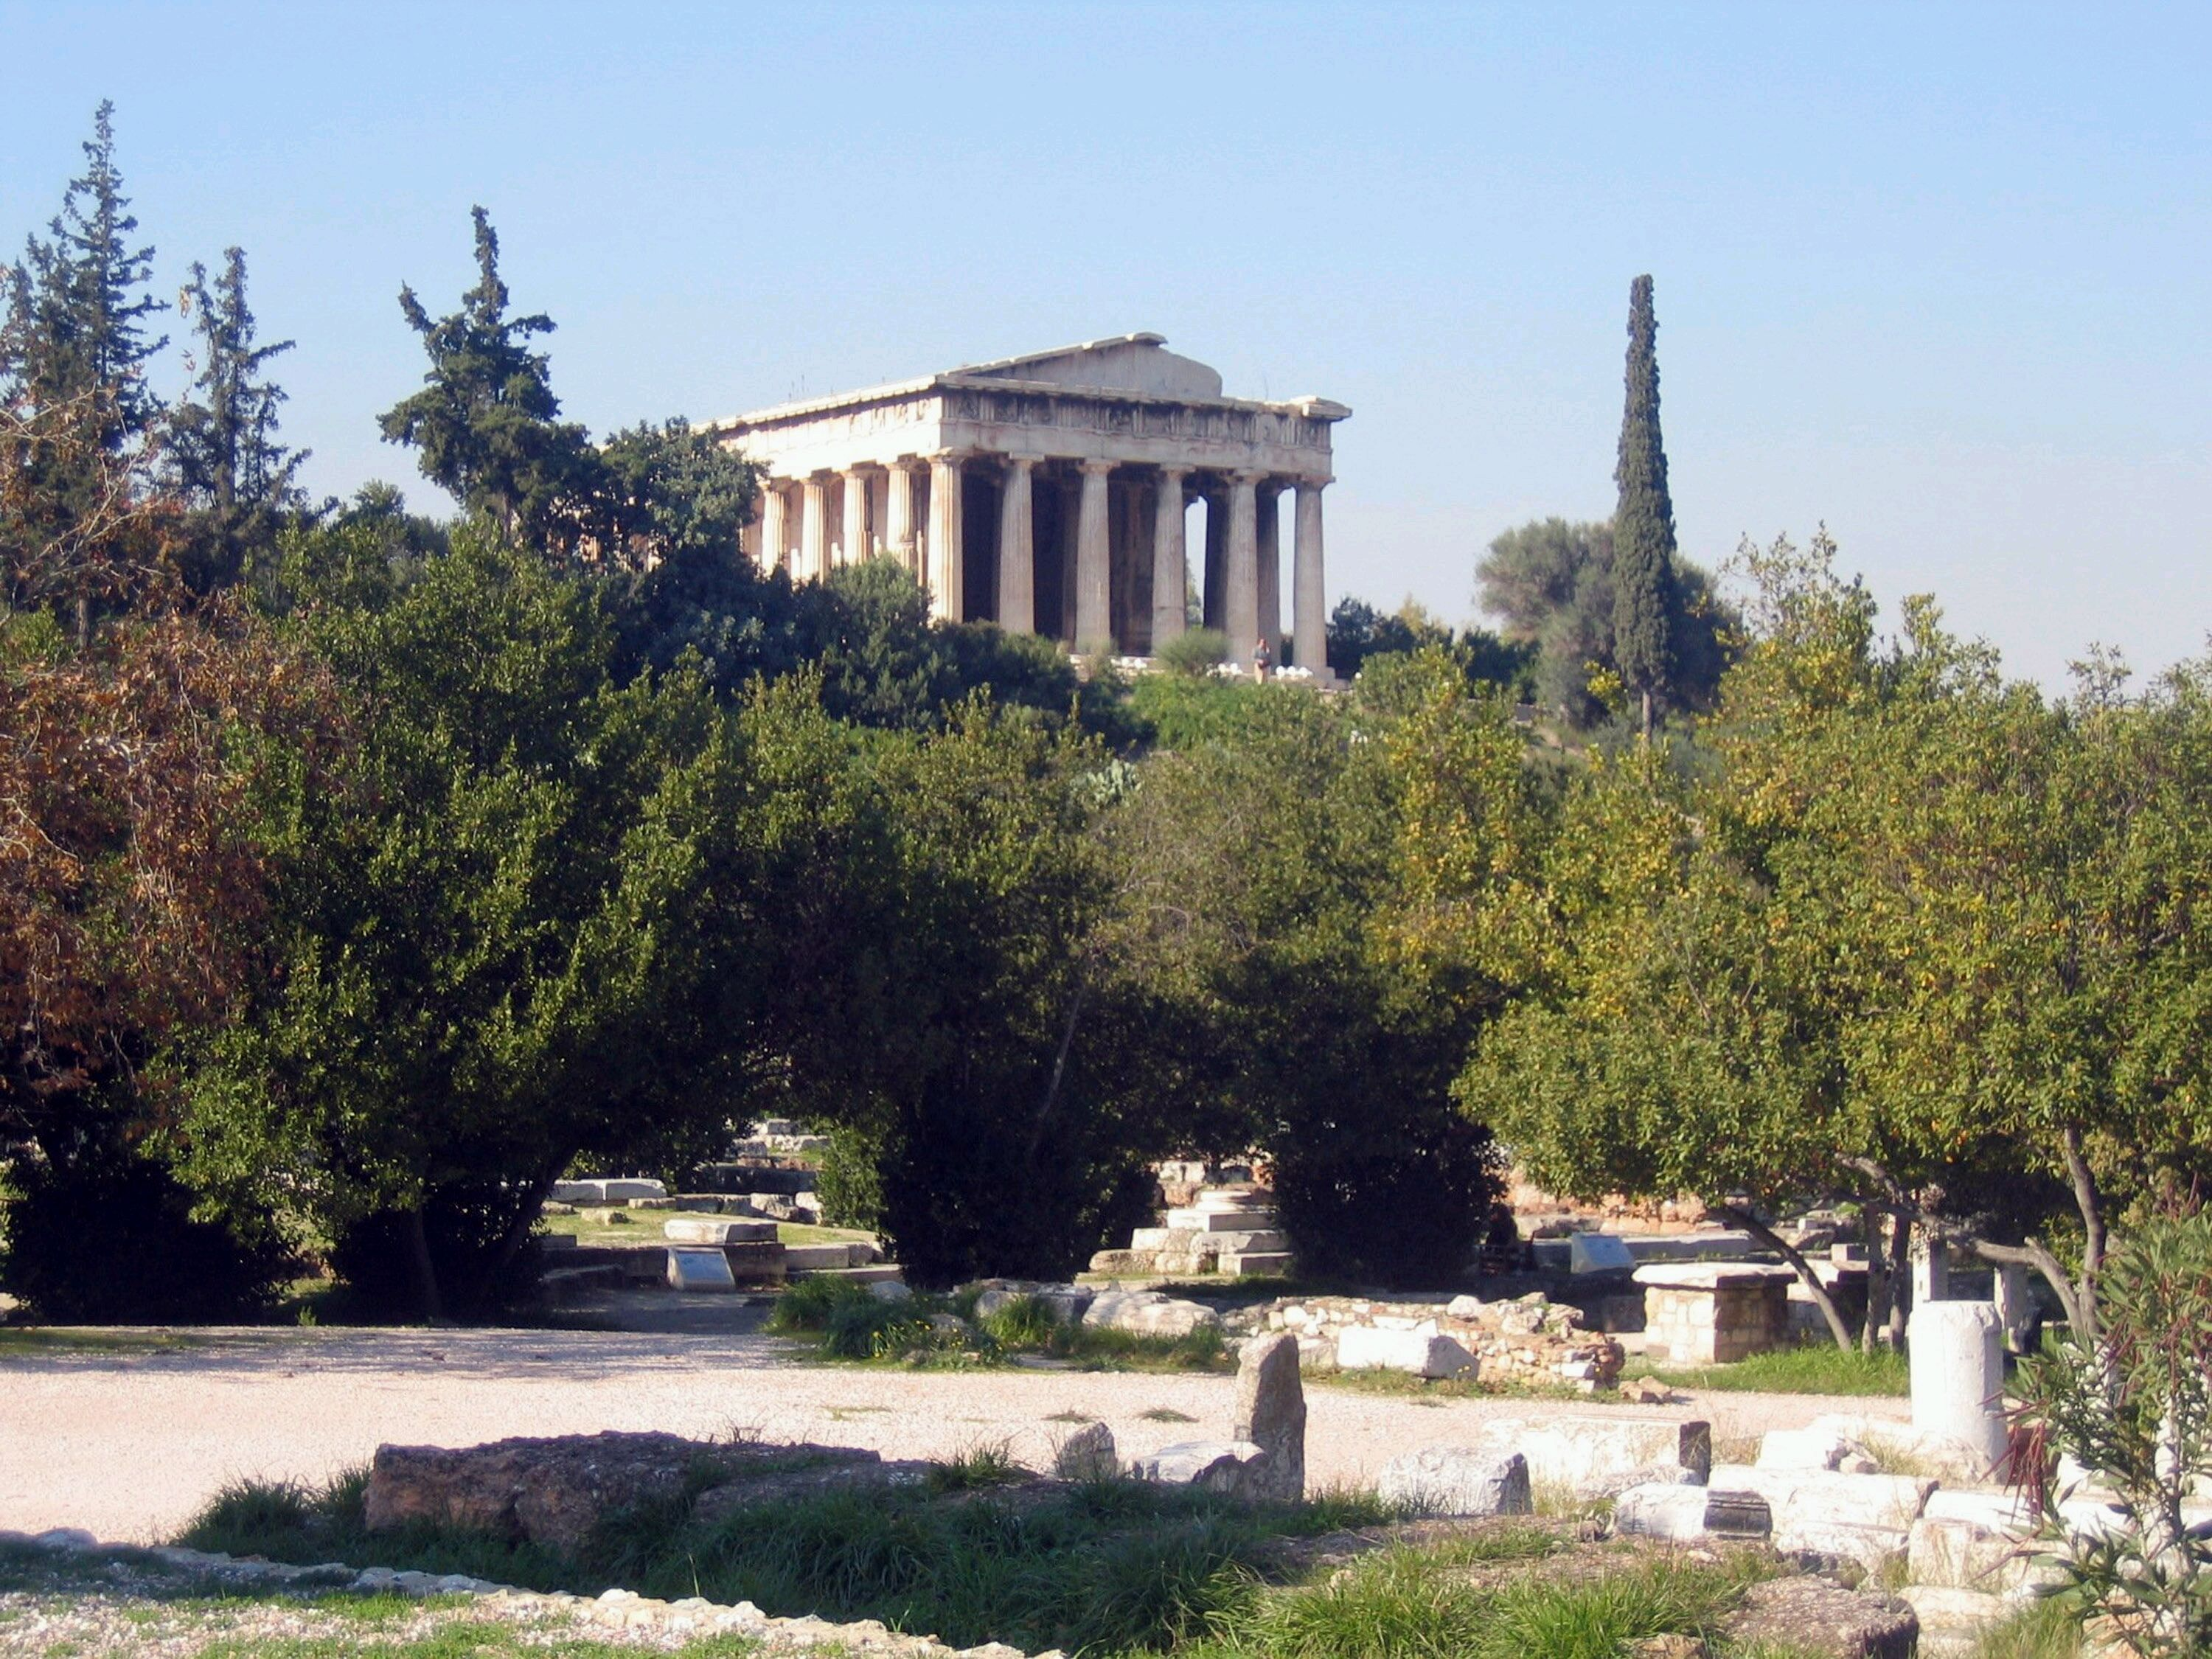 The Temple of Hephaistos looms over the ancient Greek agora, or market, which was the civic, political and commercial center of Athens, Greece.